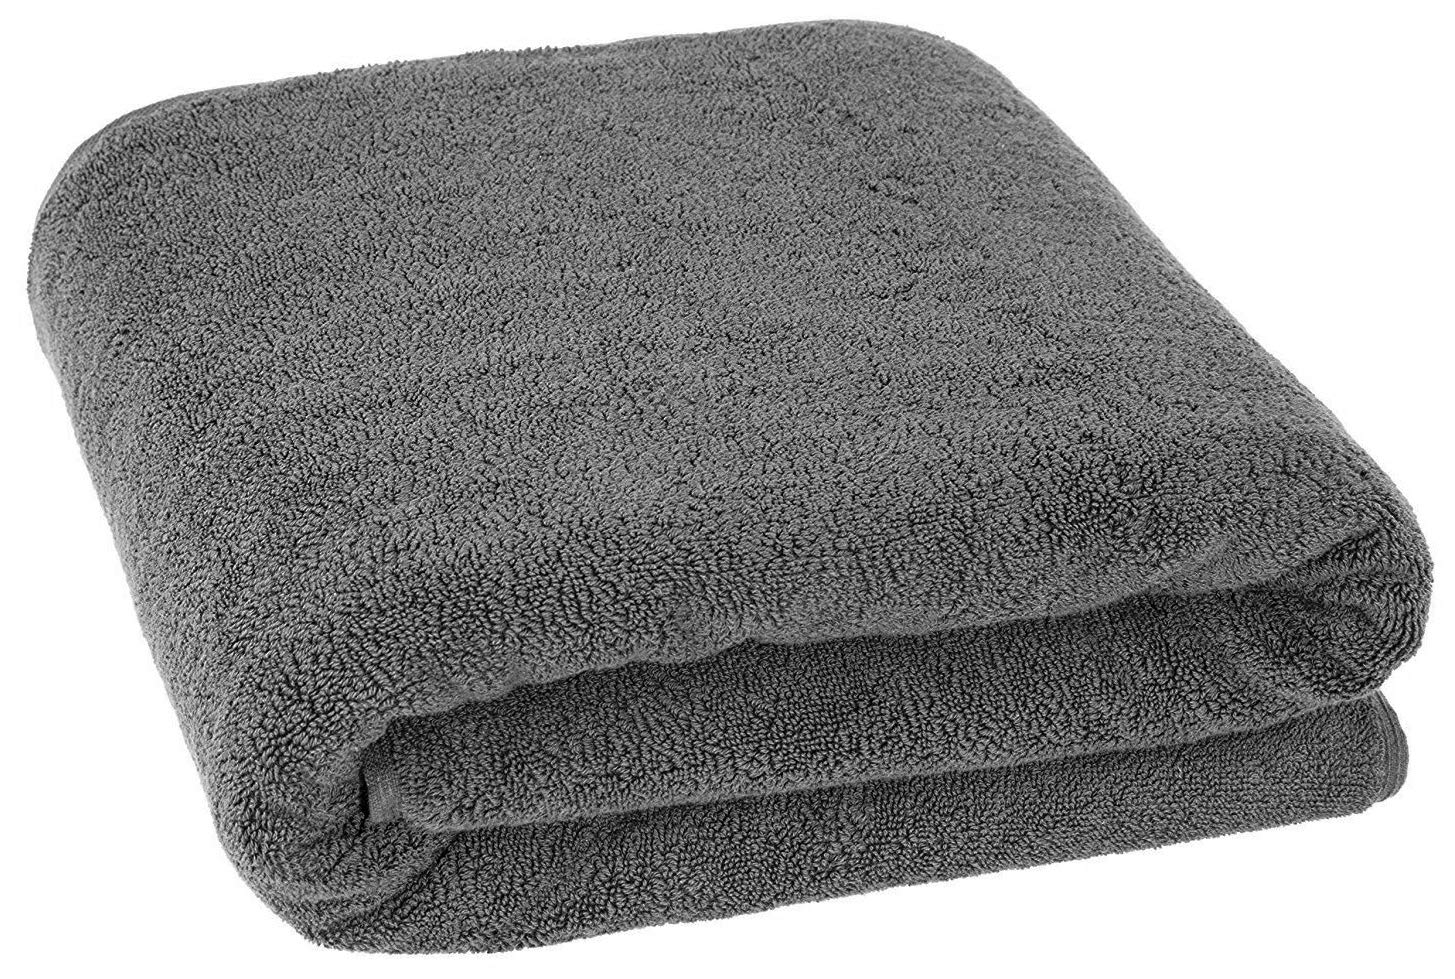 40x80 Inches Jumbo Size, Thick and Large 650 GSM Bath Sheet Cotton, Luxury Hotel & Spa Quality, Absorbent and Soft Decorative Kitchen and Bathroom Turkish Towels, Grey